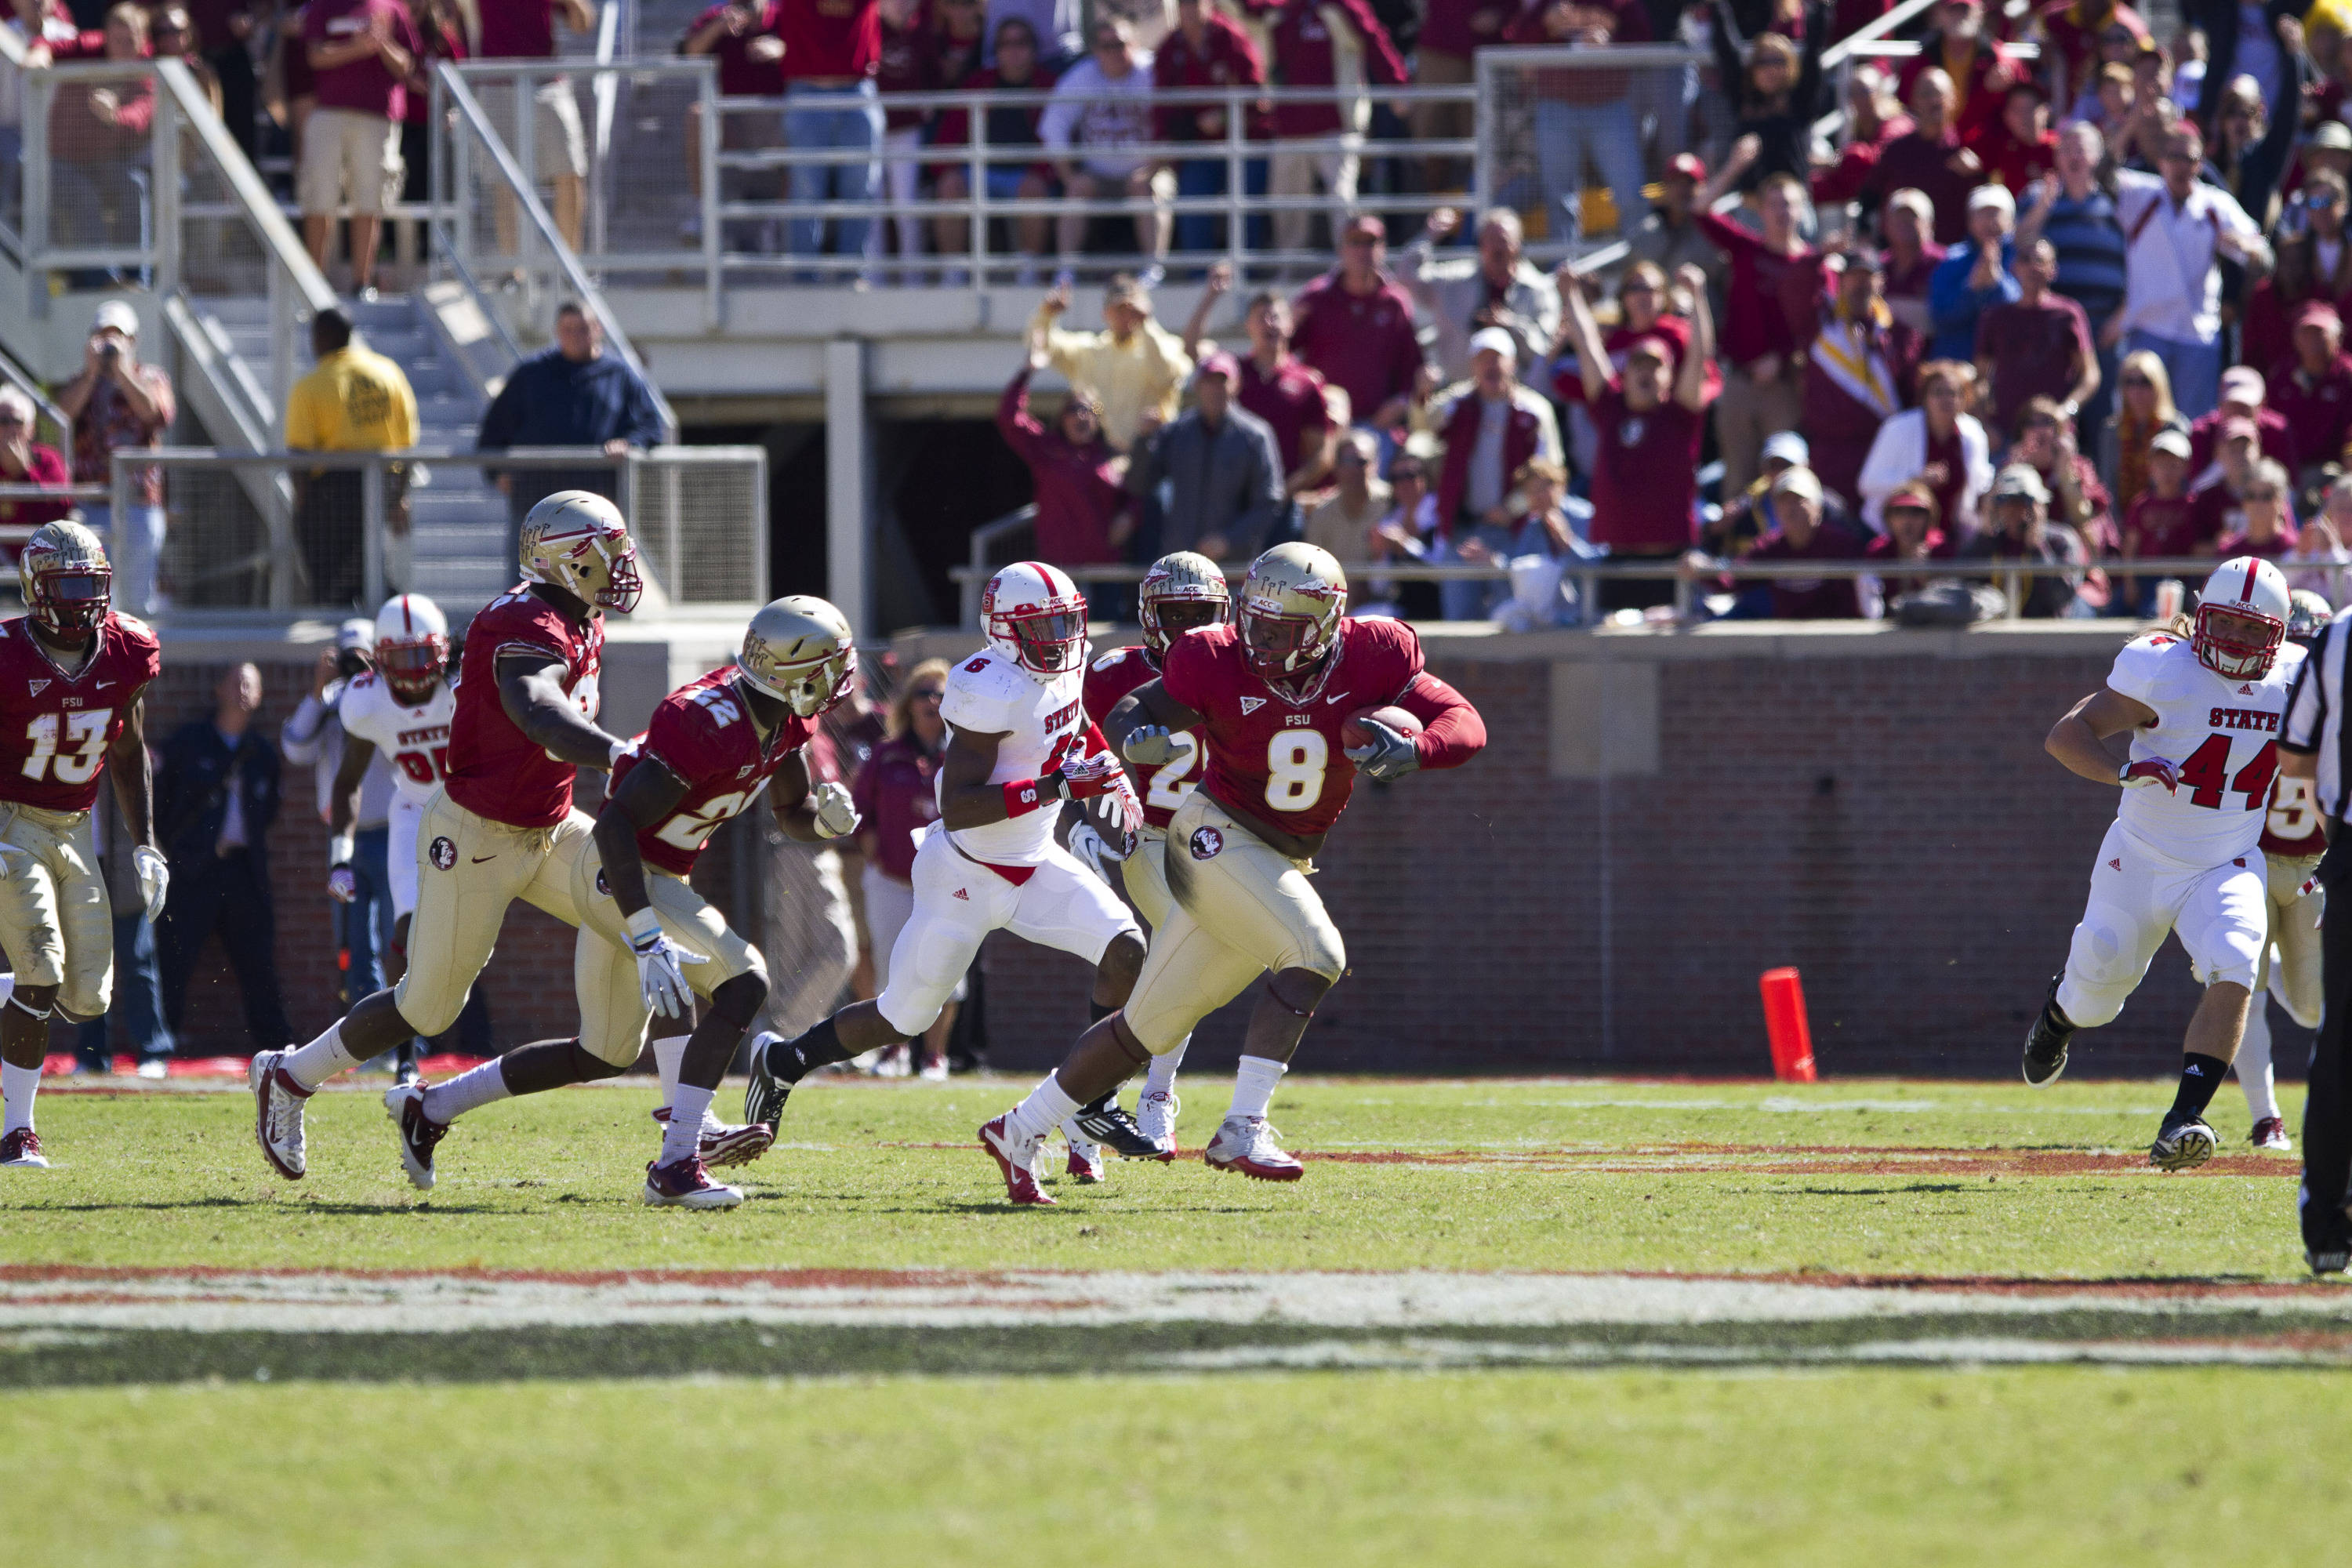 Timmy Jernigan (8) runs the ball after an interception during the football game against NC State on October 29, 2011.